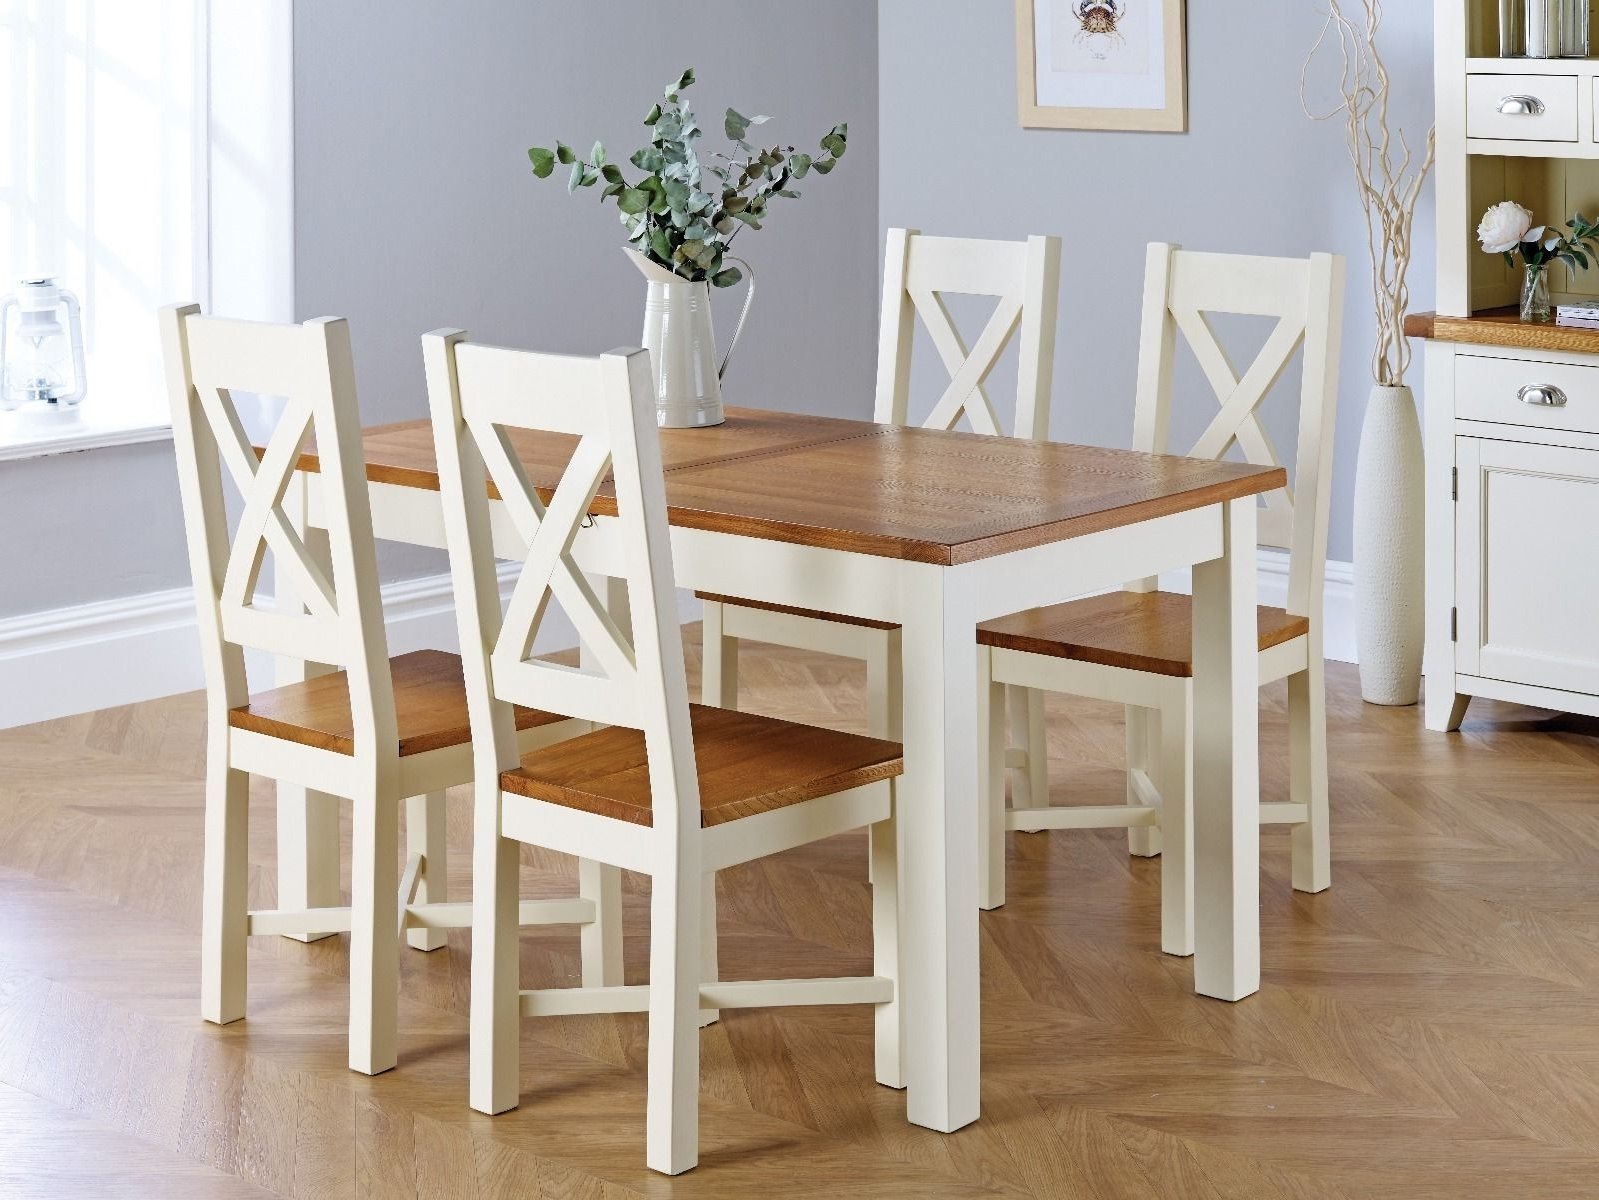 Country Oak 180Cm Cream Painted Extending Dining Table & 4 Grasmere Regarding 2017 Cream And Oak Dining Tables (View 4 of 25)